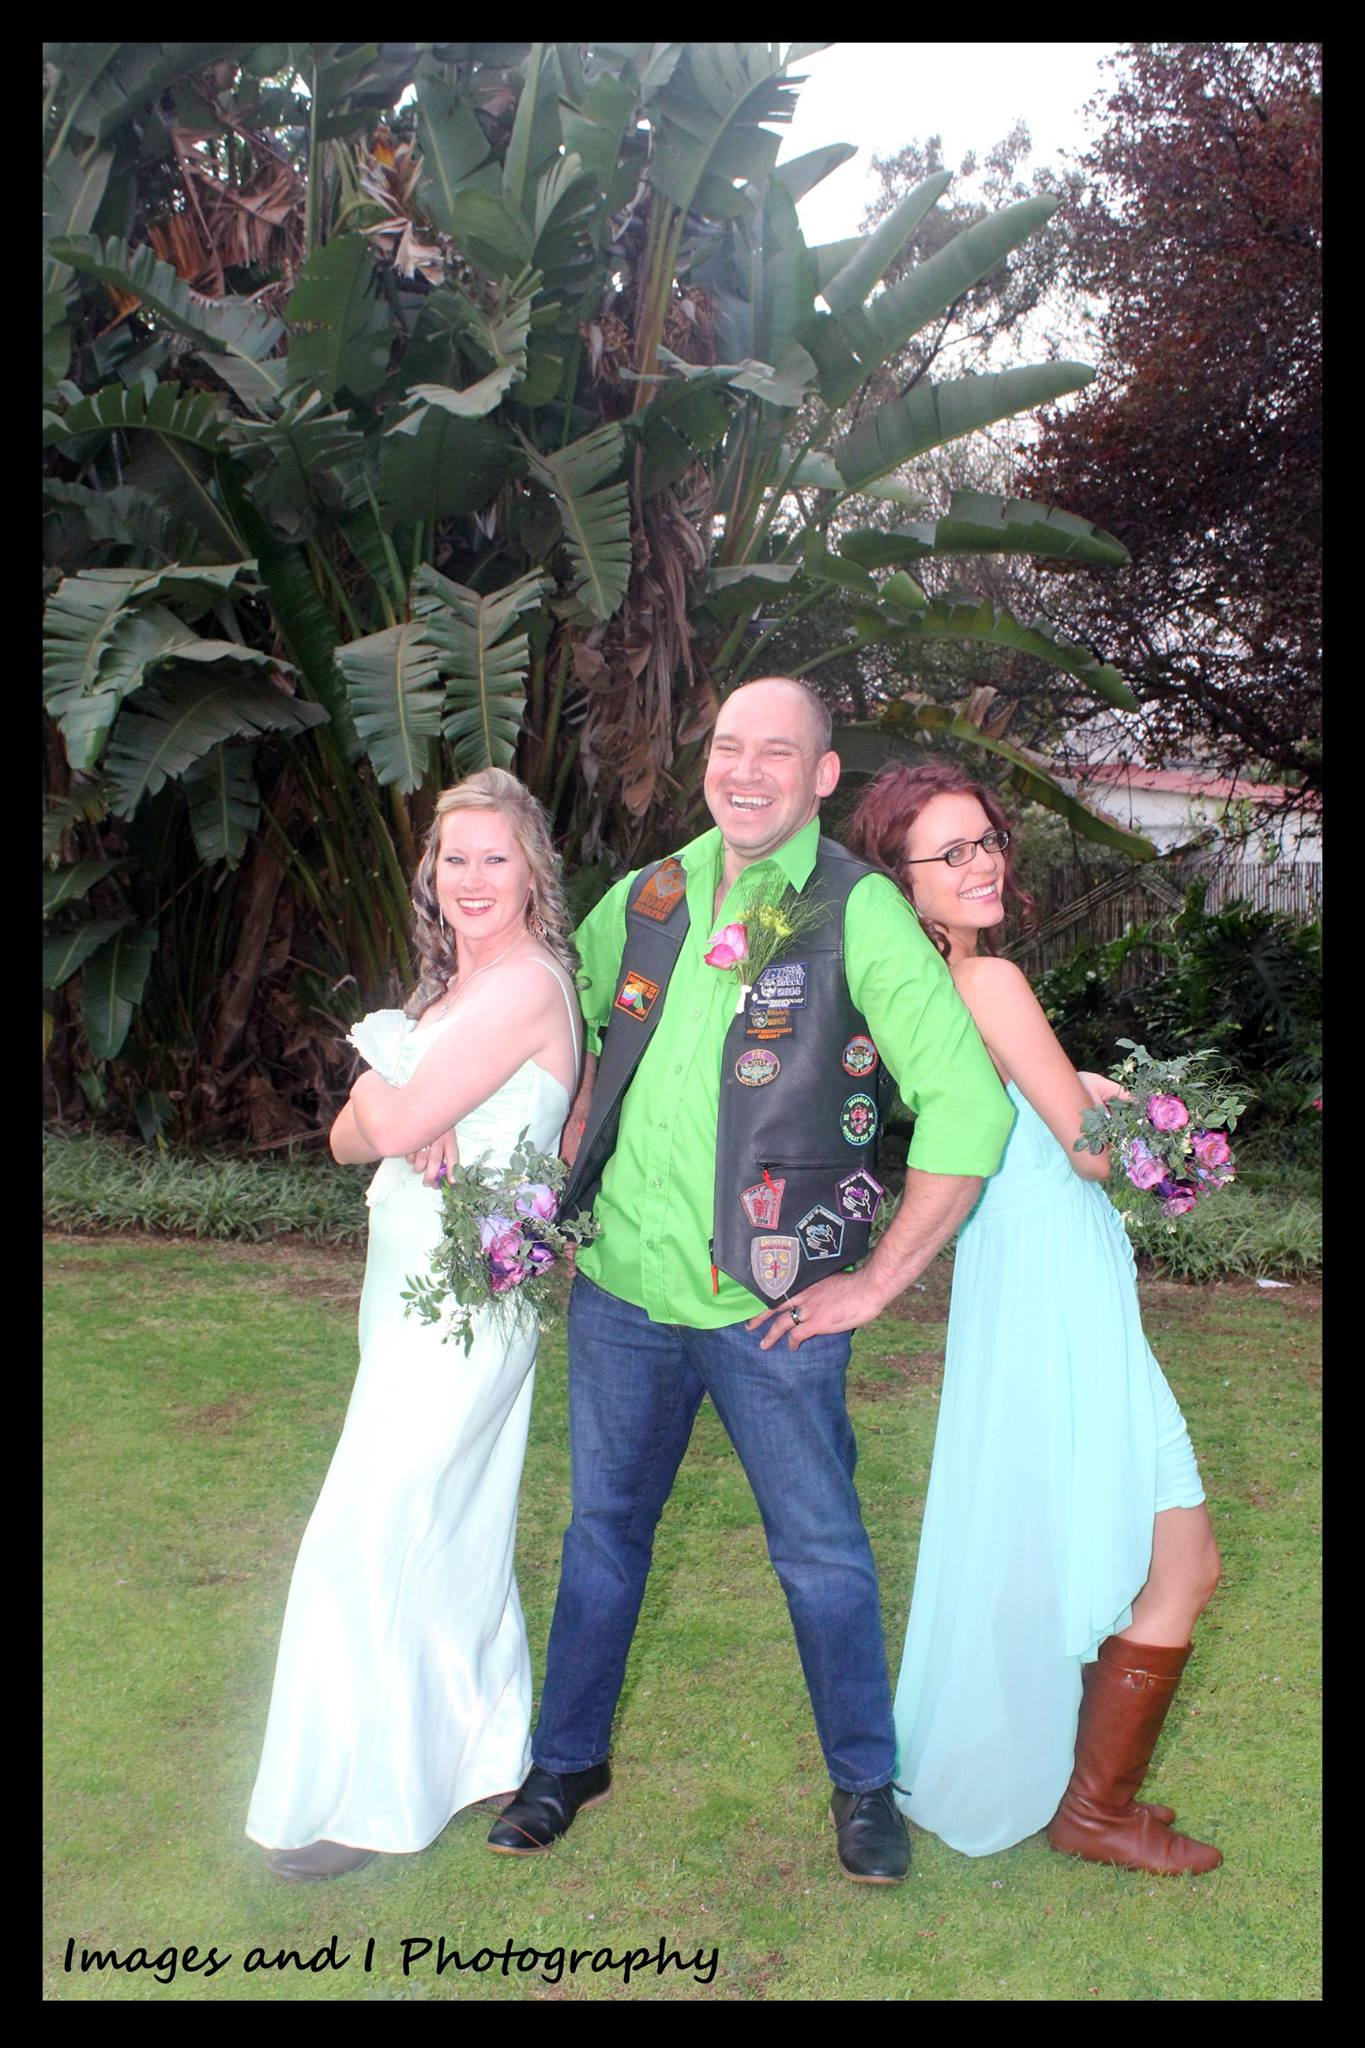 Groom and Bridesmaids Wedding Photos | Photoshoots Pretoria